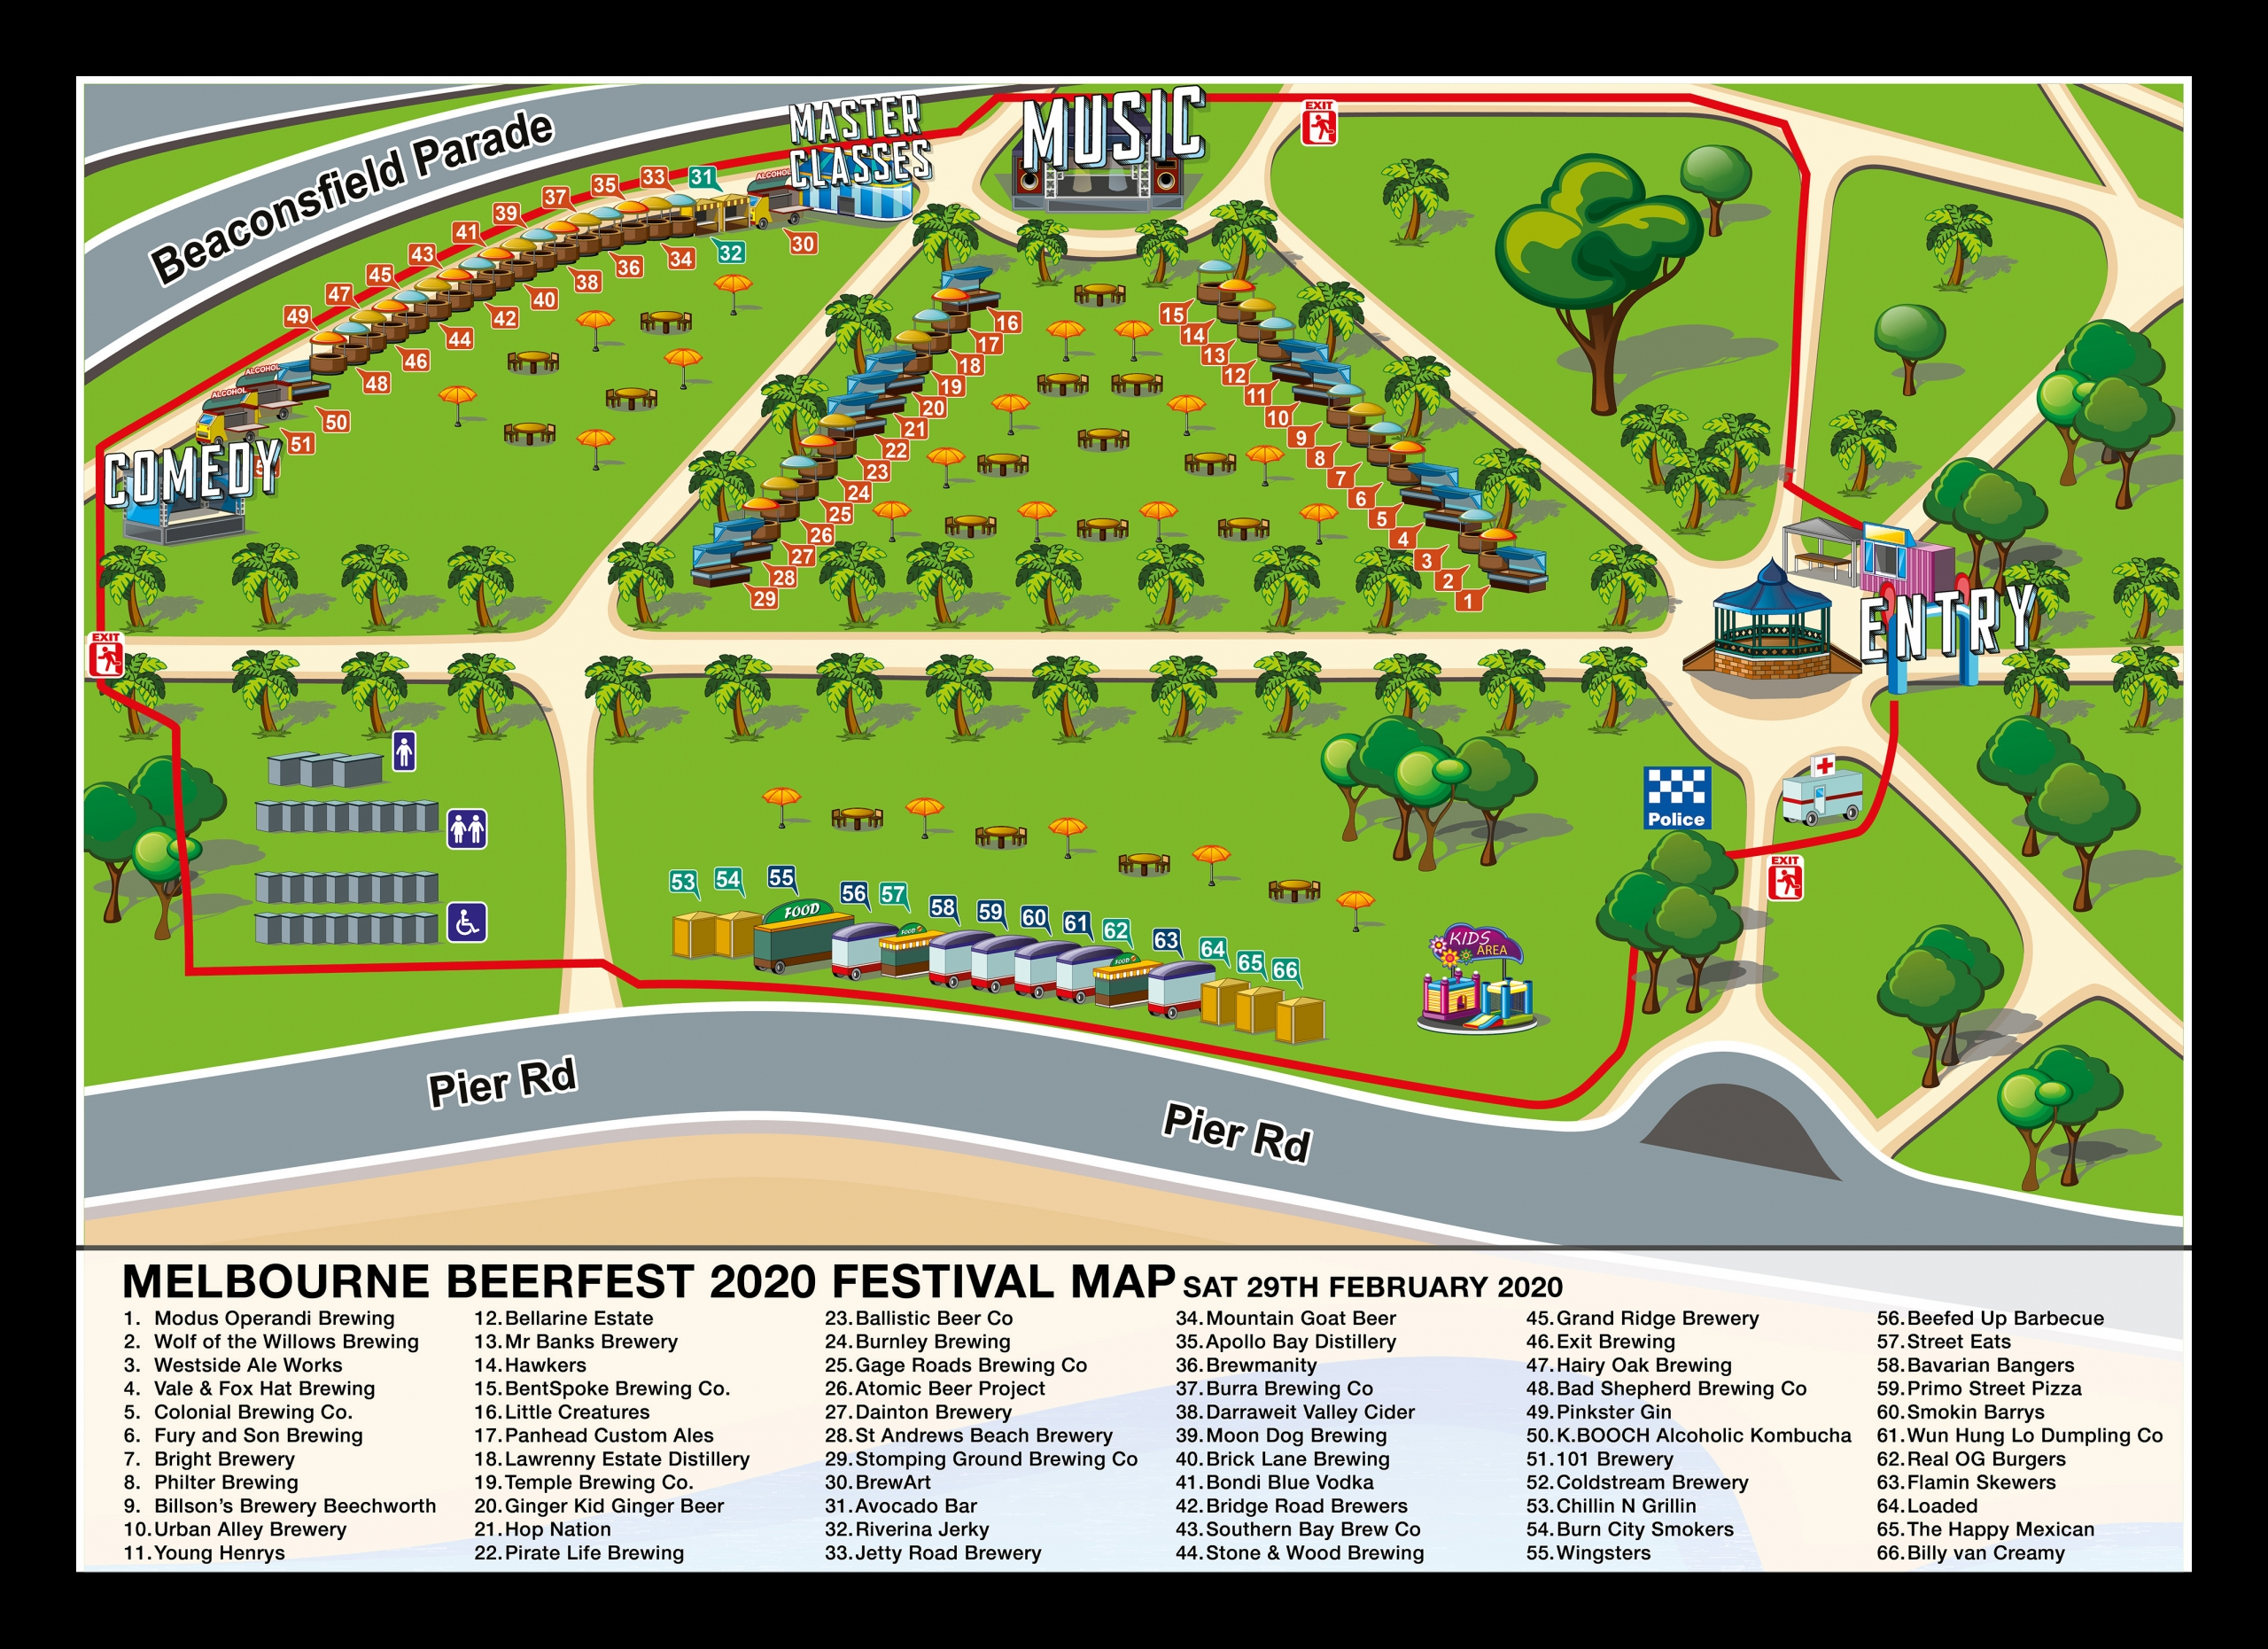 Festival map for Melbourne BeerFest 2020